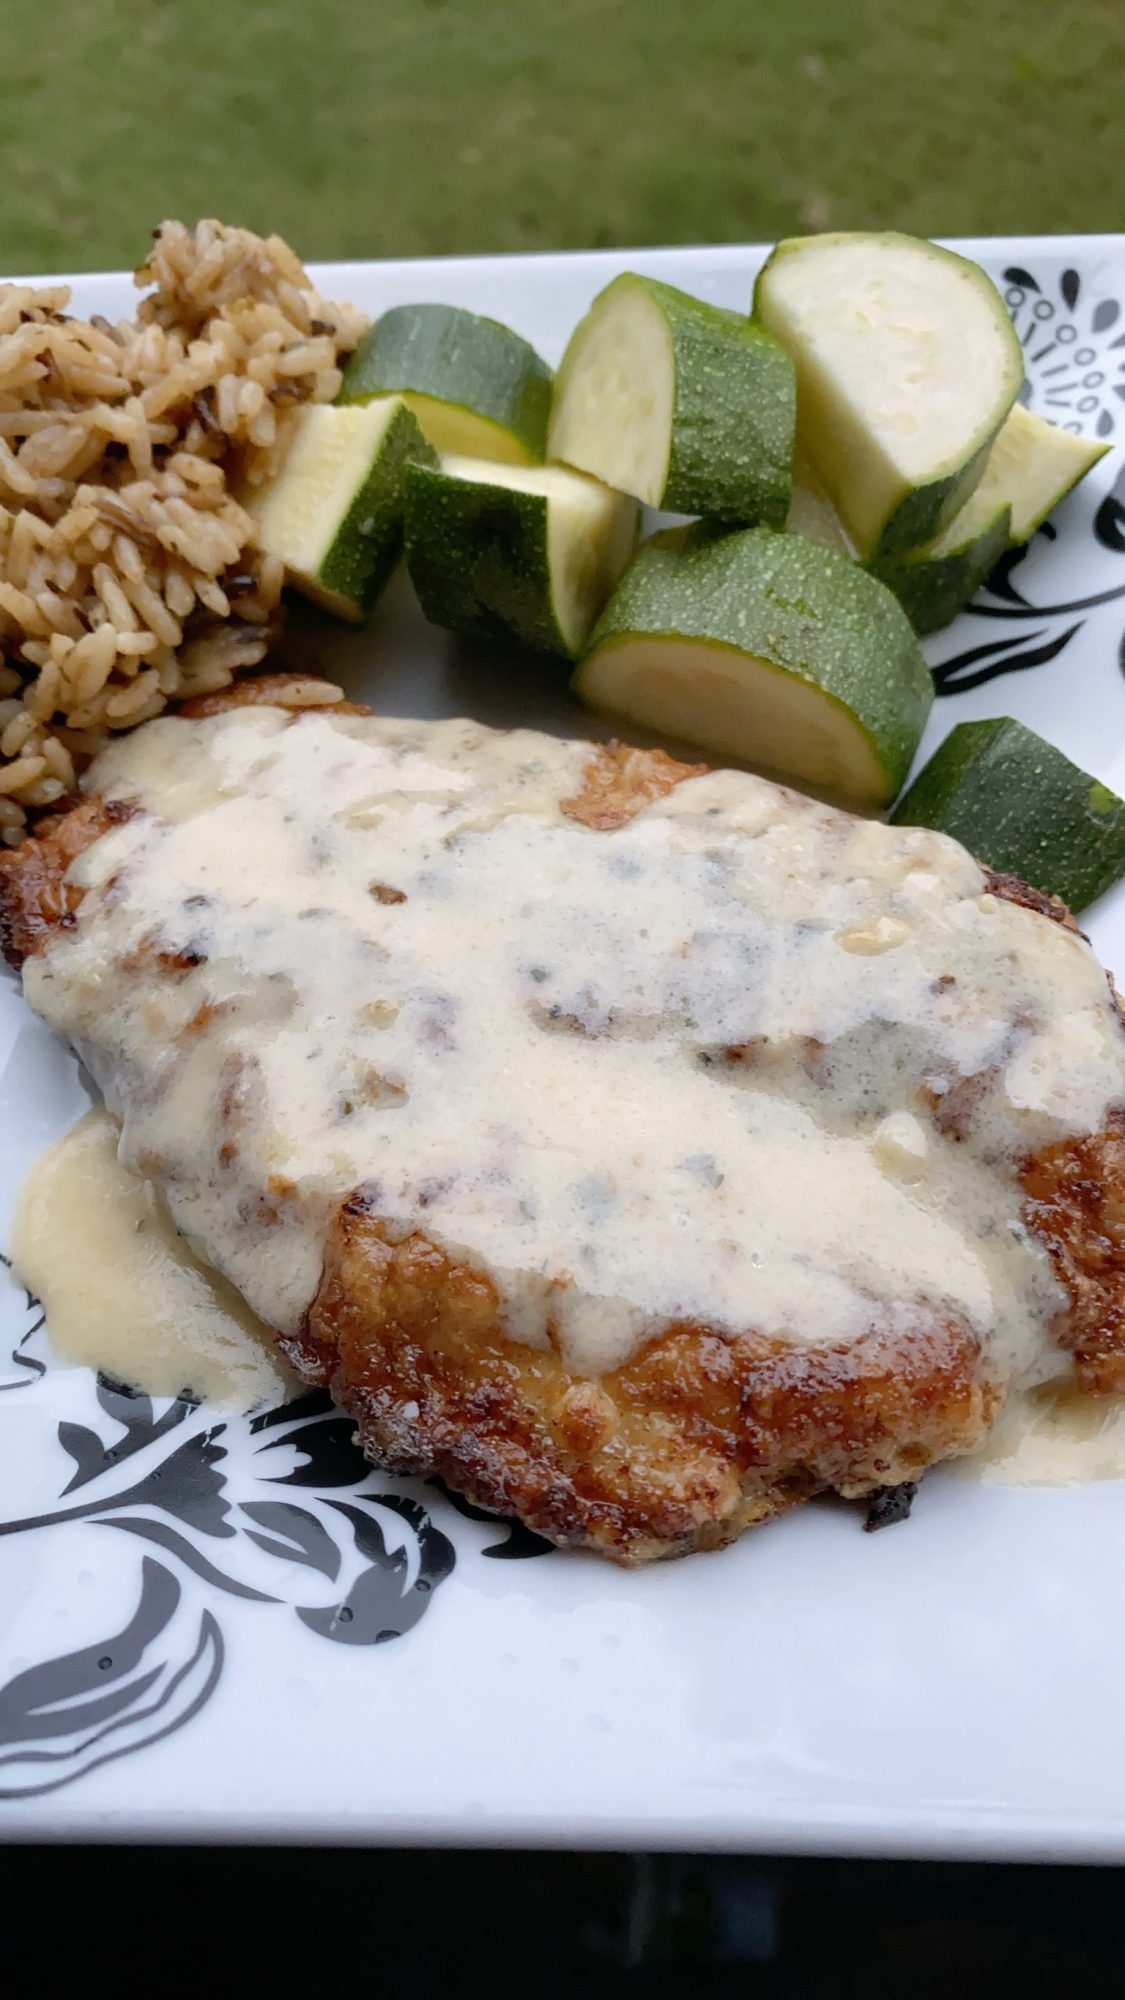 breaded chicken in lemon sauce with zucchini on the side